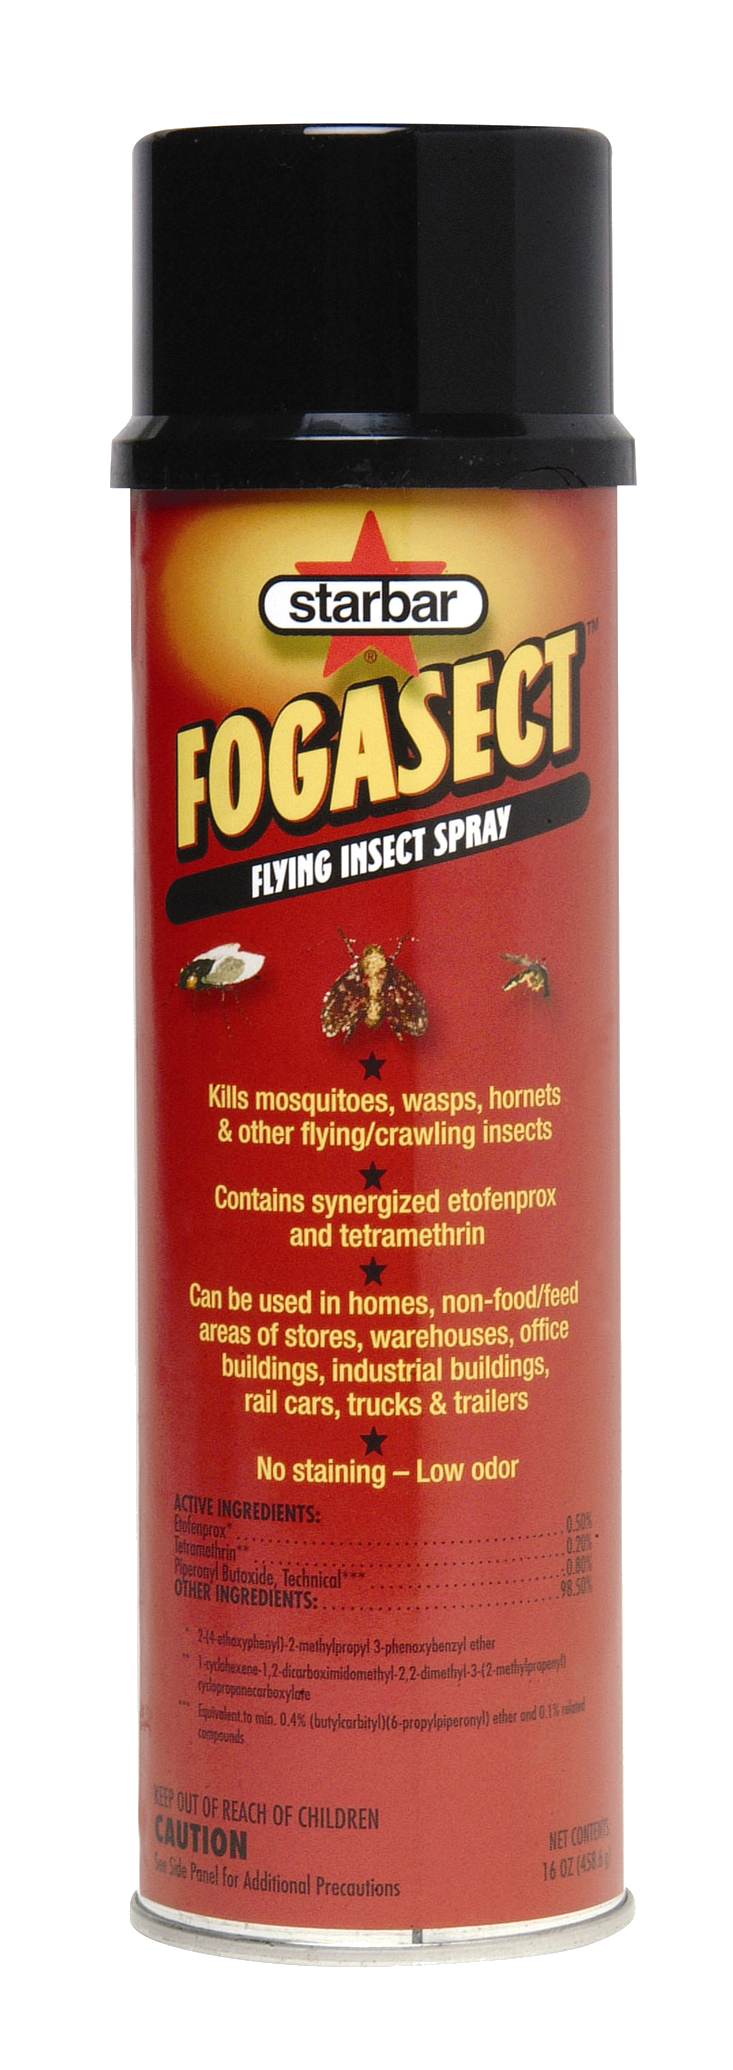 Fogasect Crawling Insect Spray